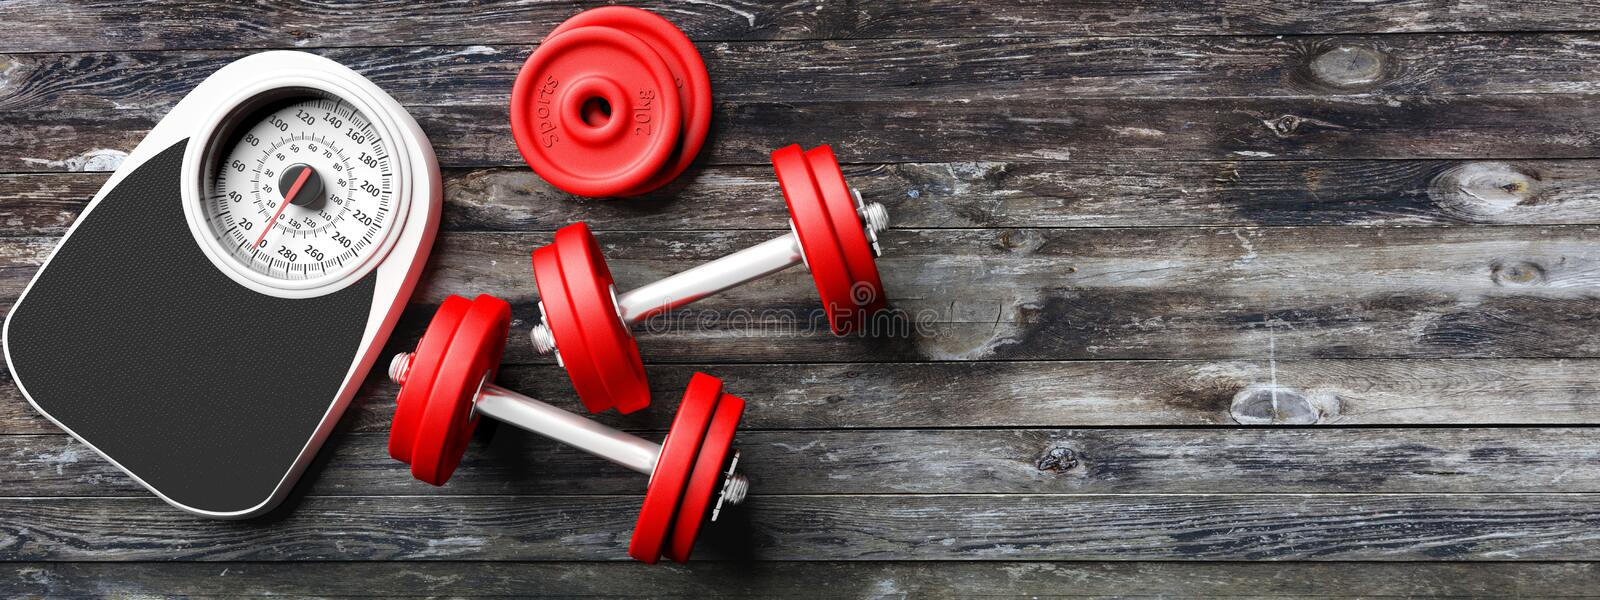 Bathroom scale, dumbbells on an old wooden floor background. Copyspace for text. 3d illustration. Bathroom scale, dumbbells on the left side of a wooden floor vector illustration